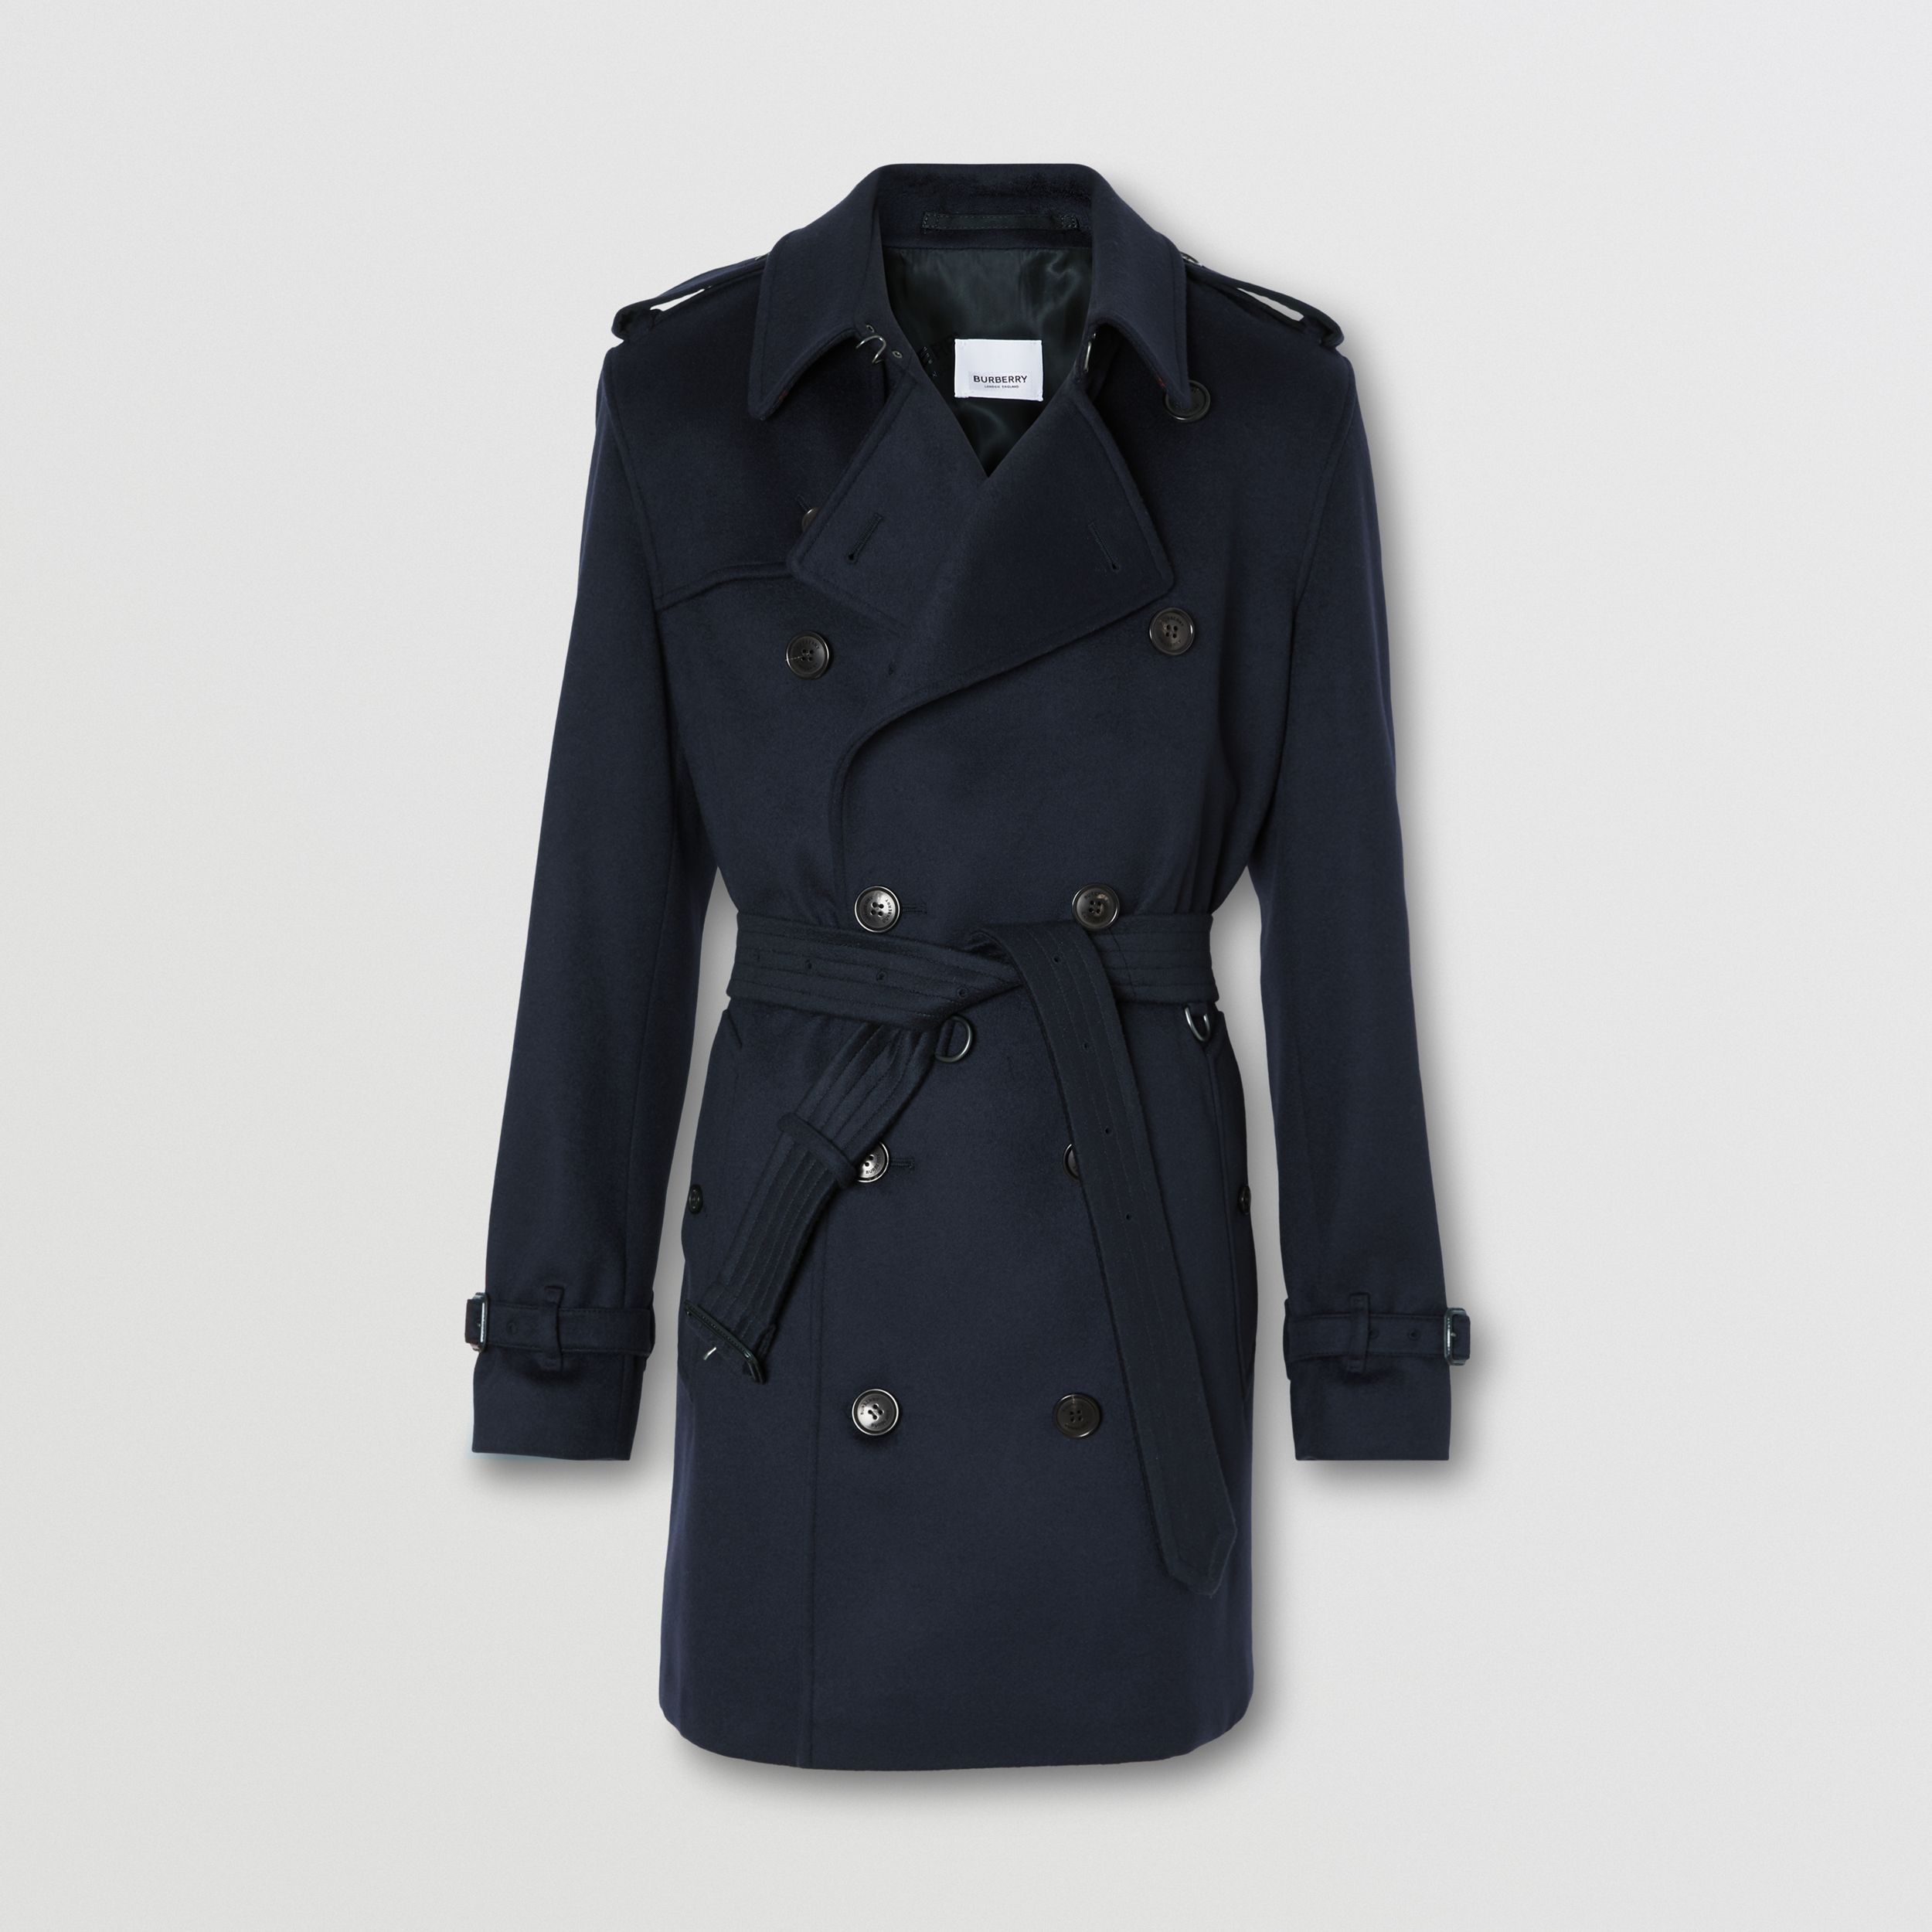 Wool Cashmere Trench Coat in Navy - Men | Burberry - 4